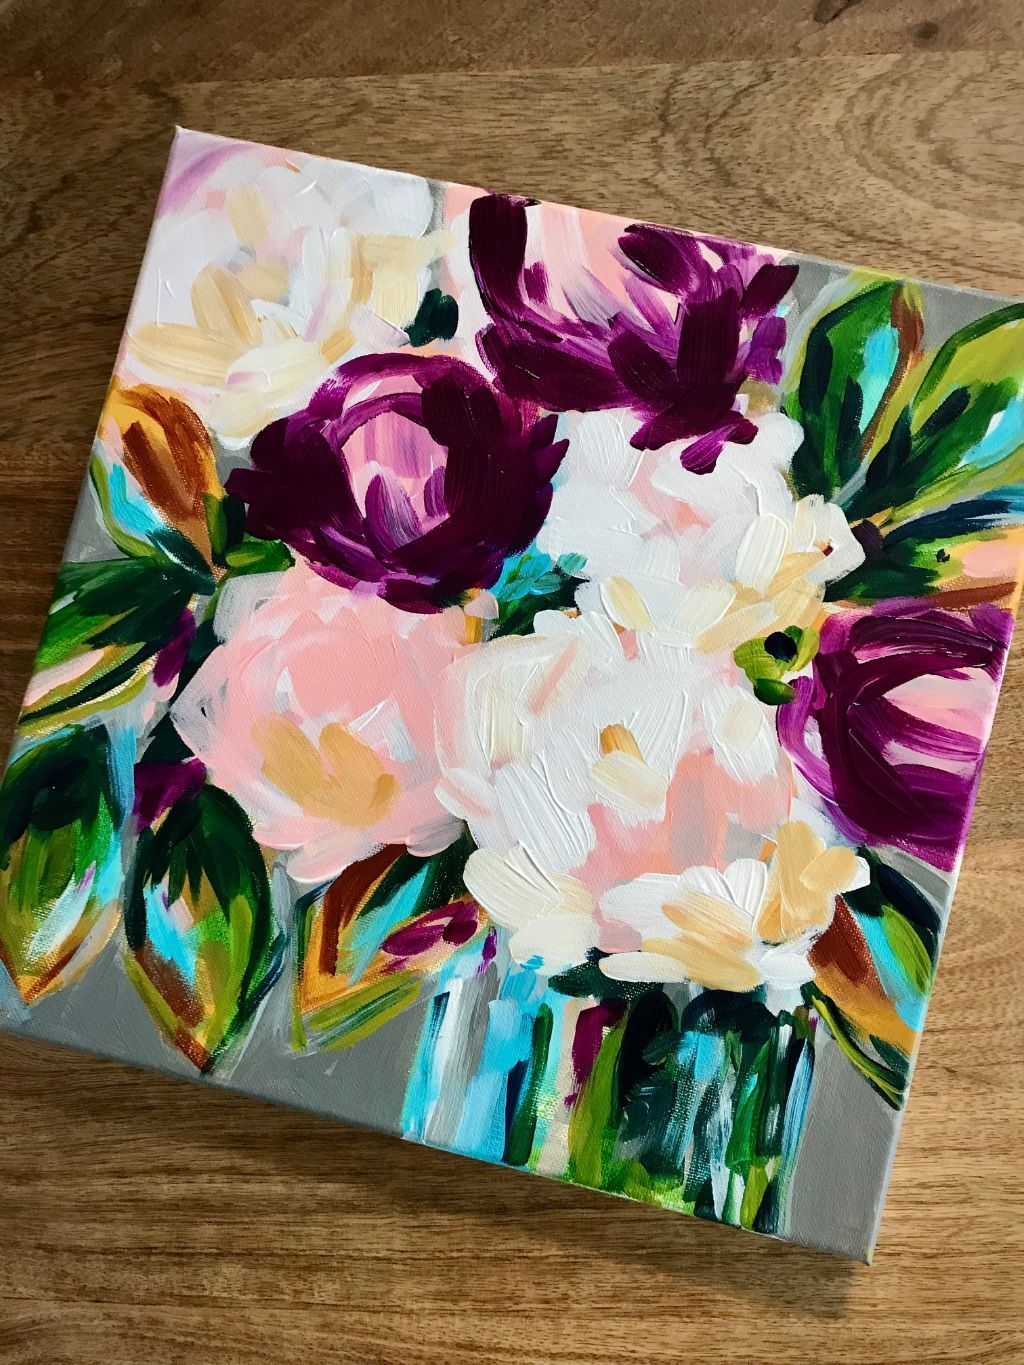 Easy Flower Painting Tutorial How To Paint Easy Abstract Flowers Step By Step In 2020 Abstract Flower Painting Acrylic Abstract Flower Painting Easy Flower Painting